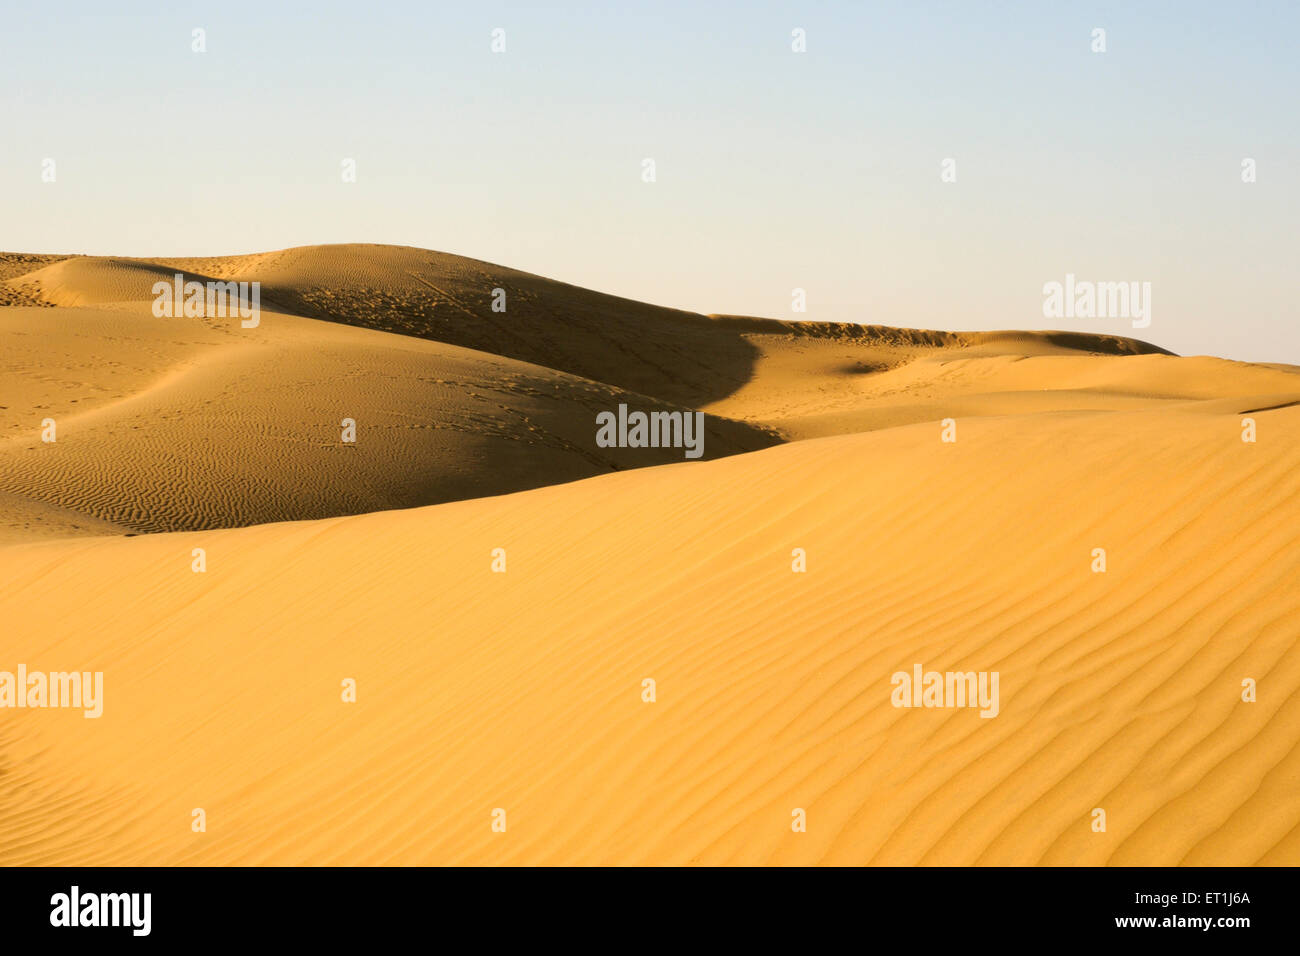 Ripple design on sand dunes due to wind with highlight and shadow play at Sam ; Jaisalmer ; Rajasthan ; India - Stock Image